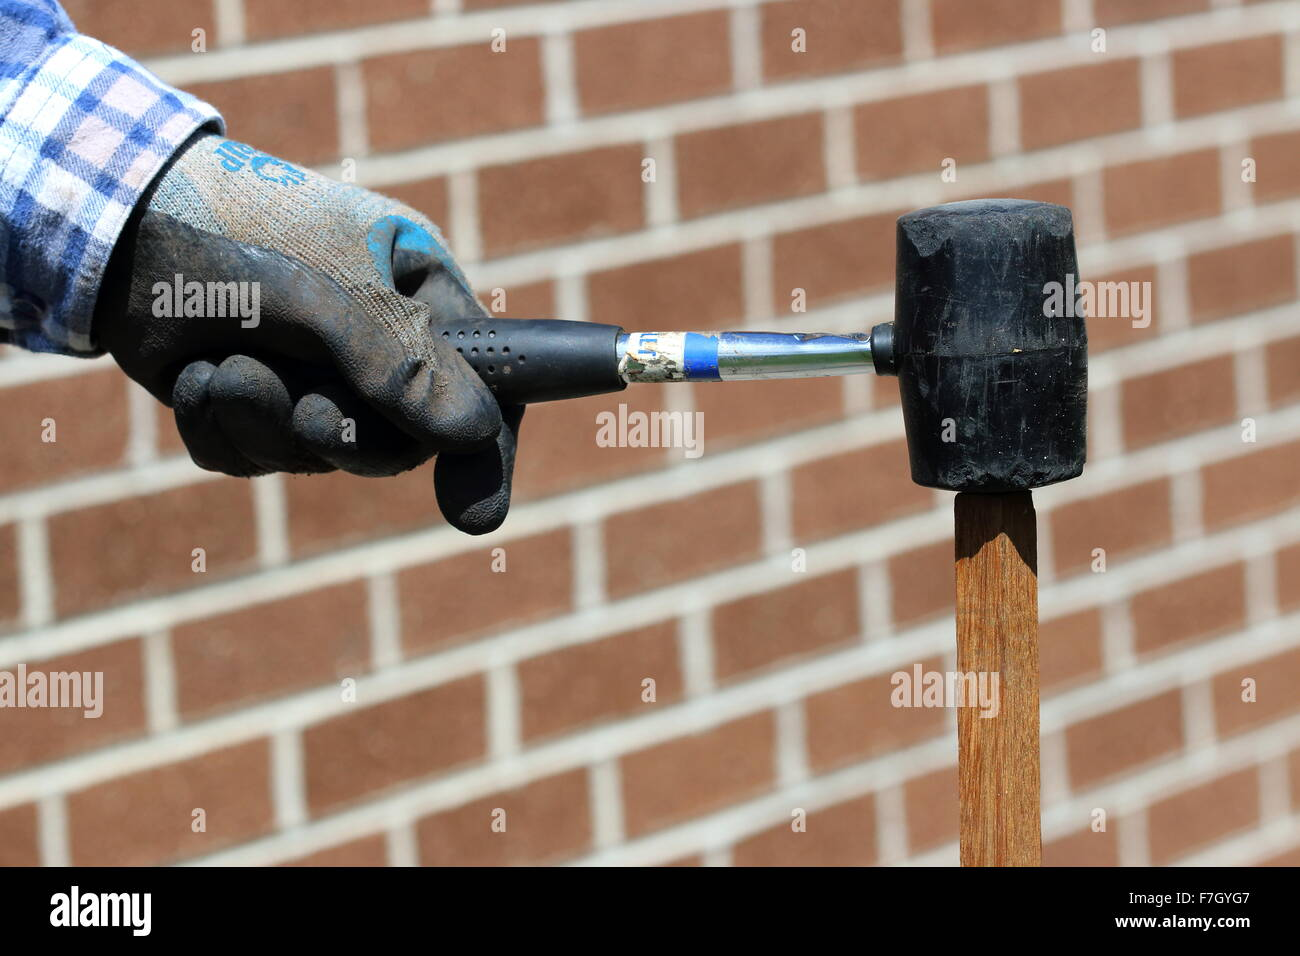 Hammering garden stake using rubber mallet Stock Photo: 90727287 - Alamy